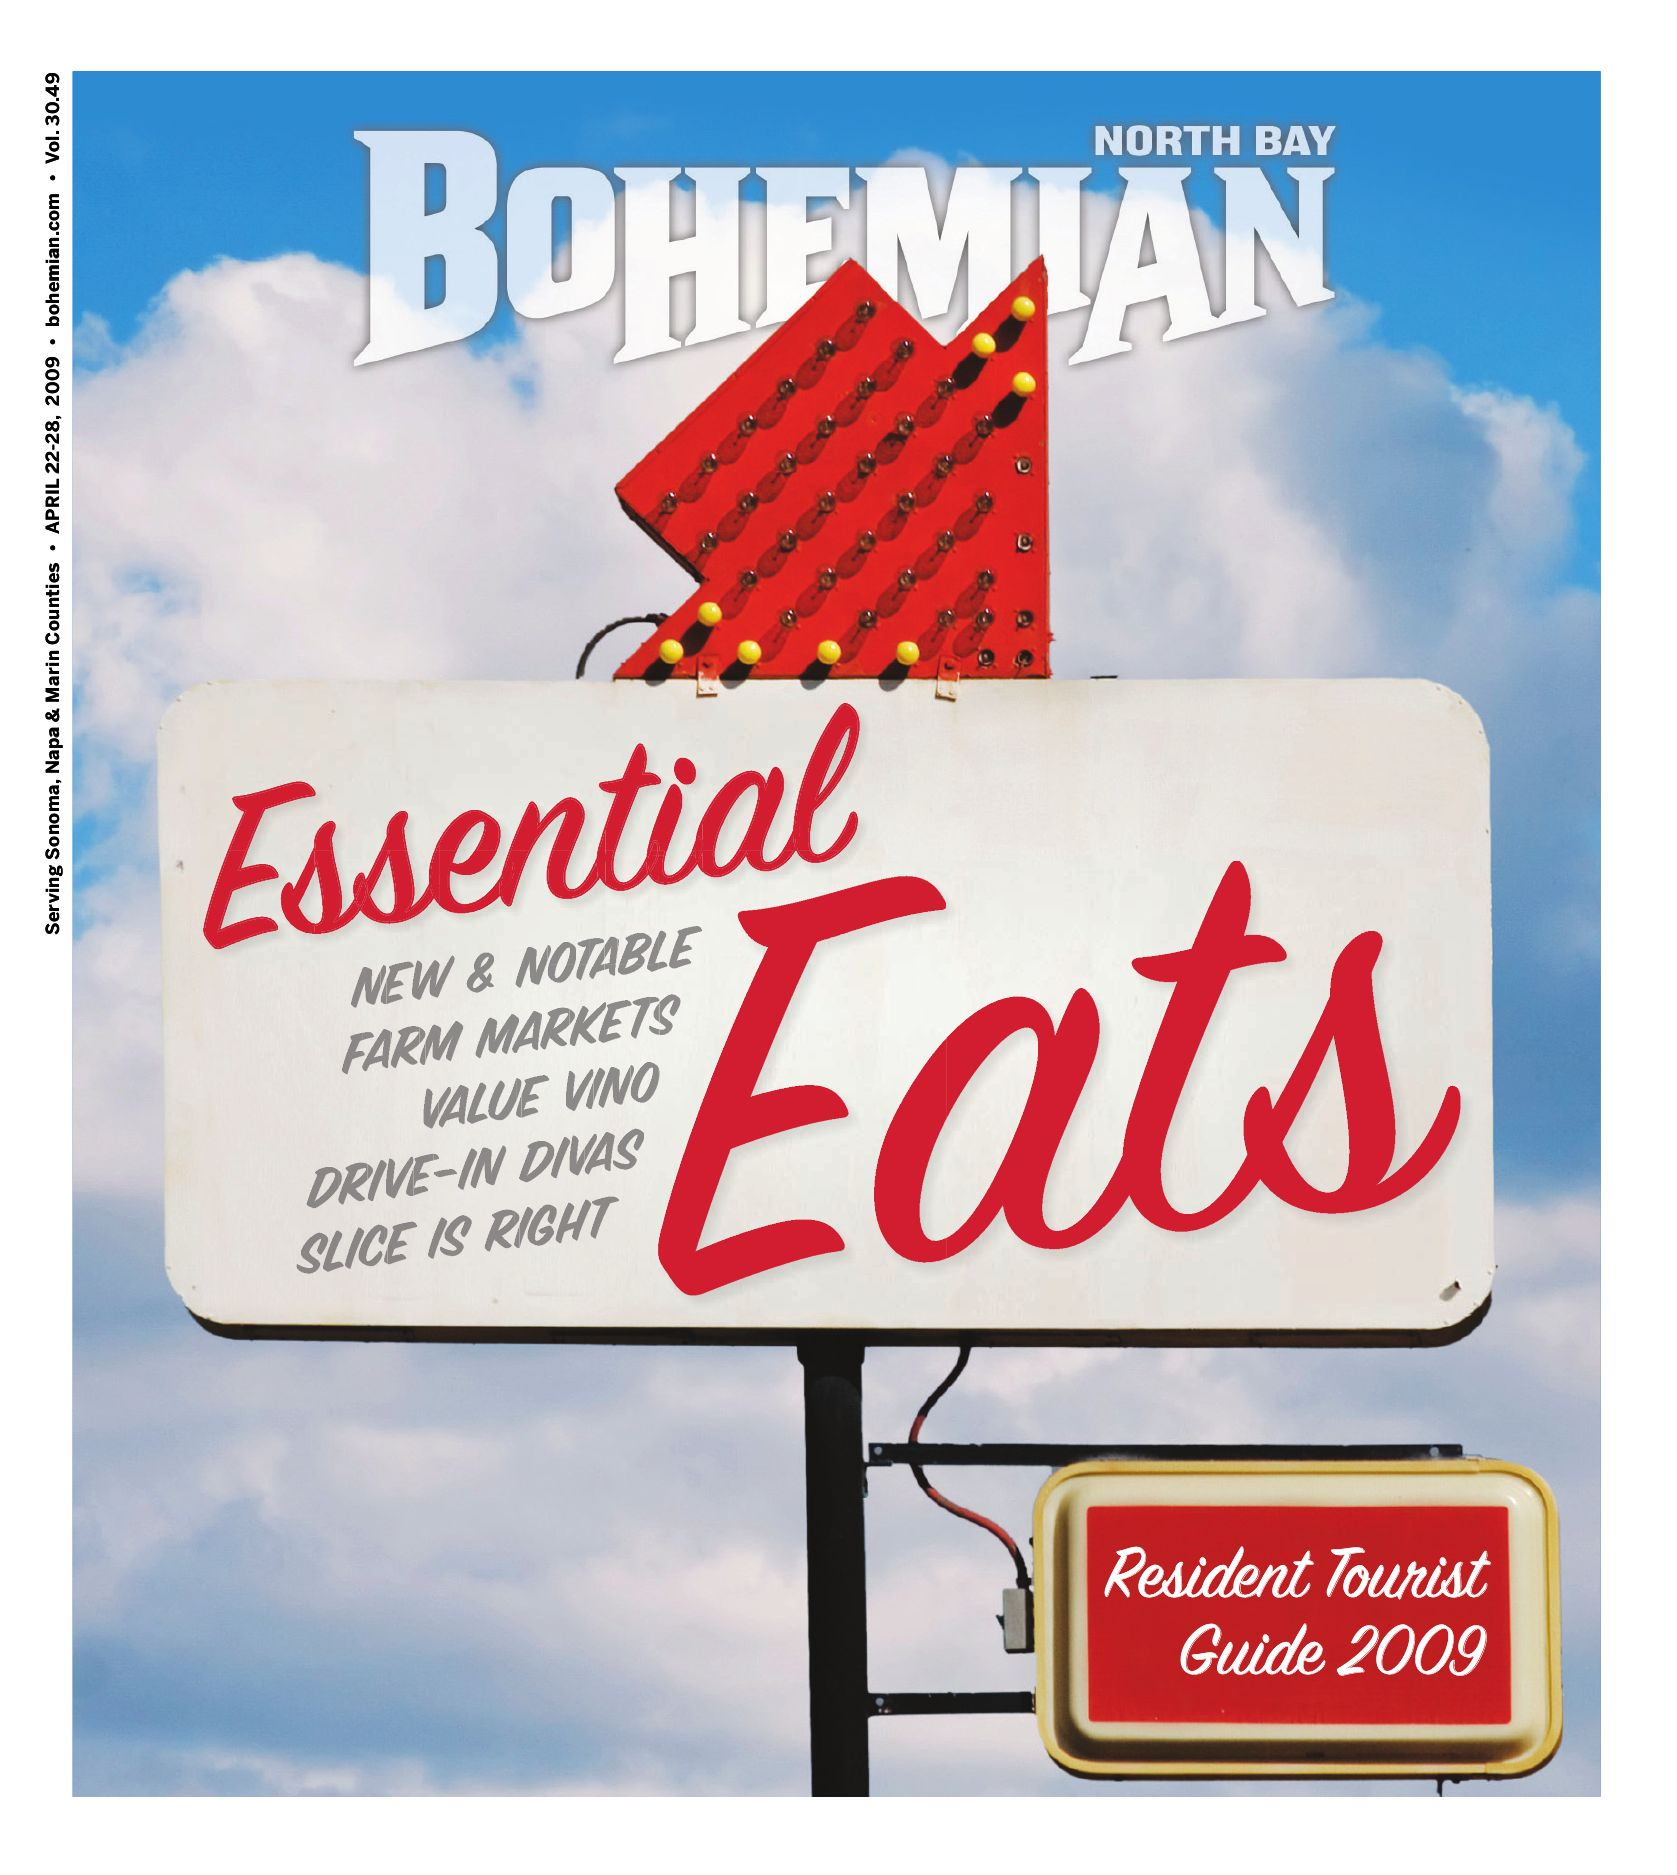 North bay Bohemian by Metro Publishing - issuu